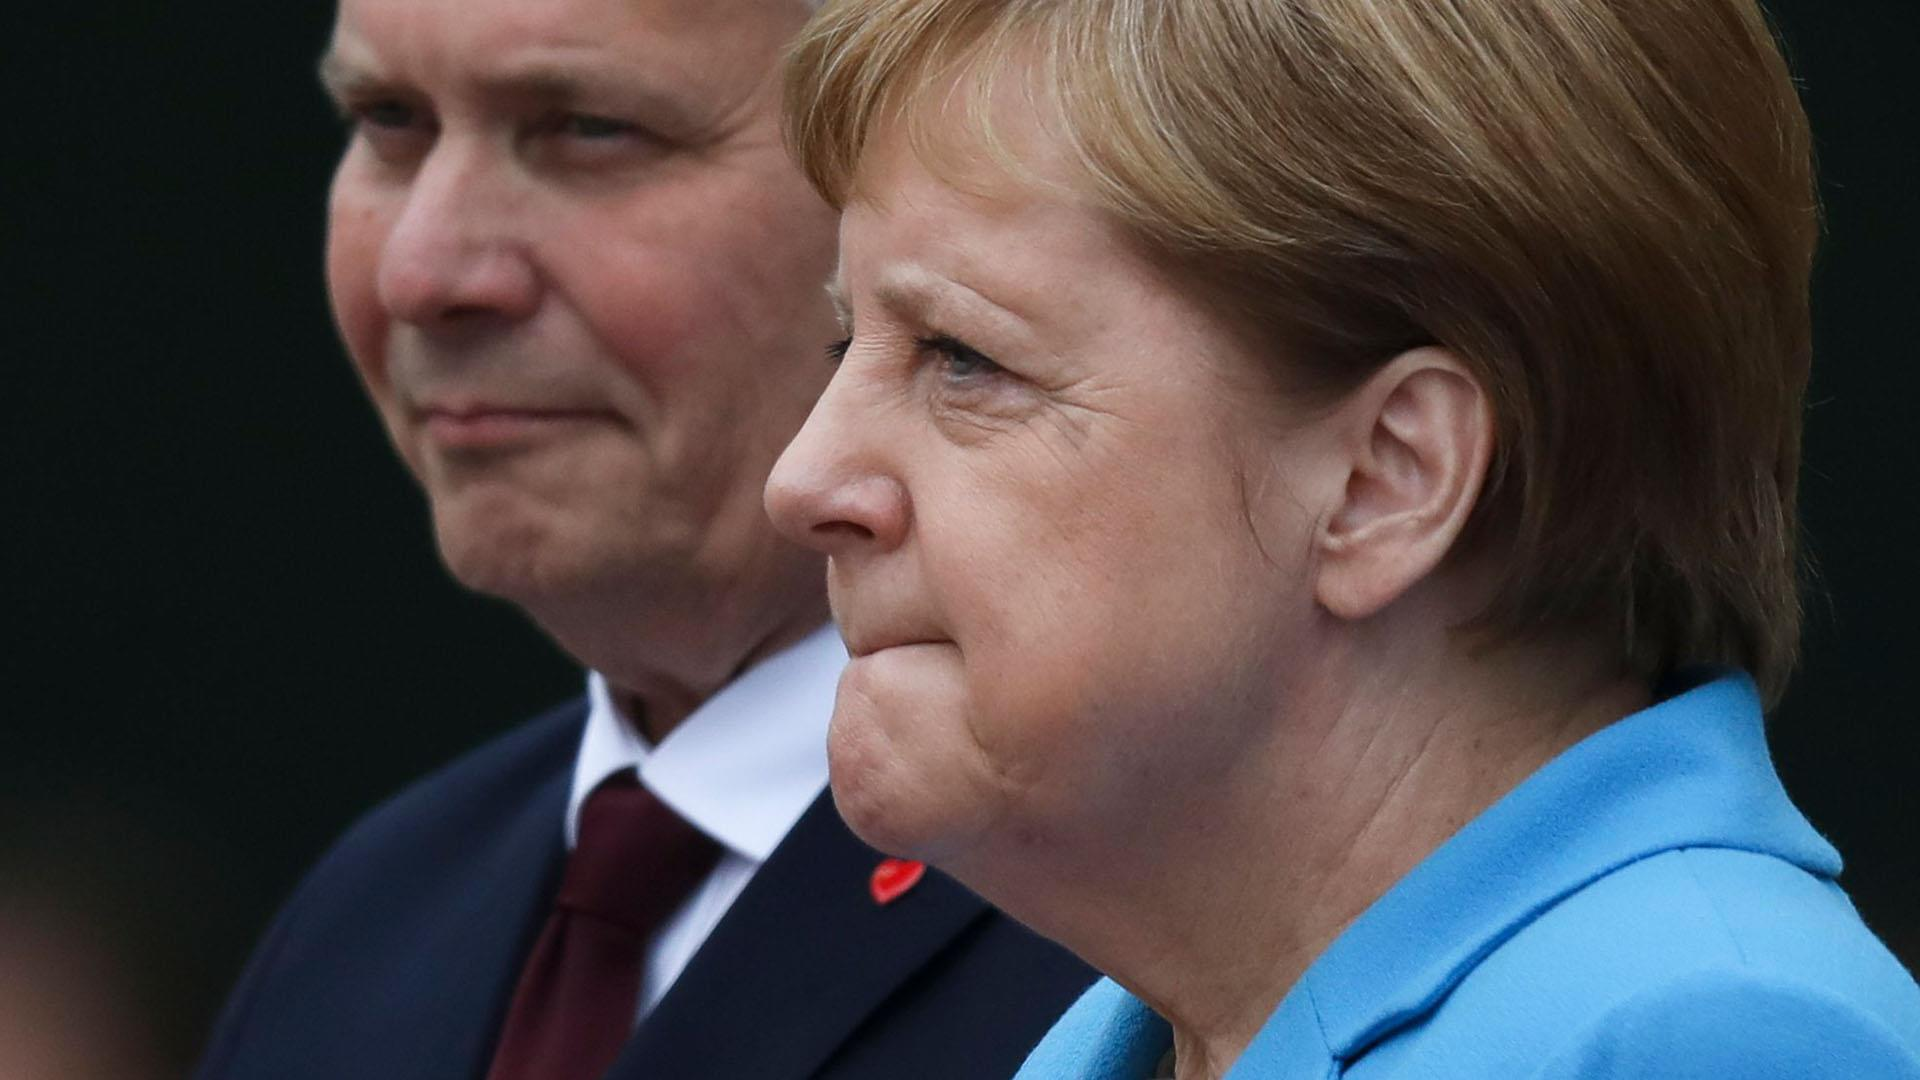 Angela Merkel seen shaking in public for third time in a month